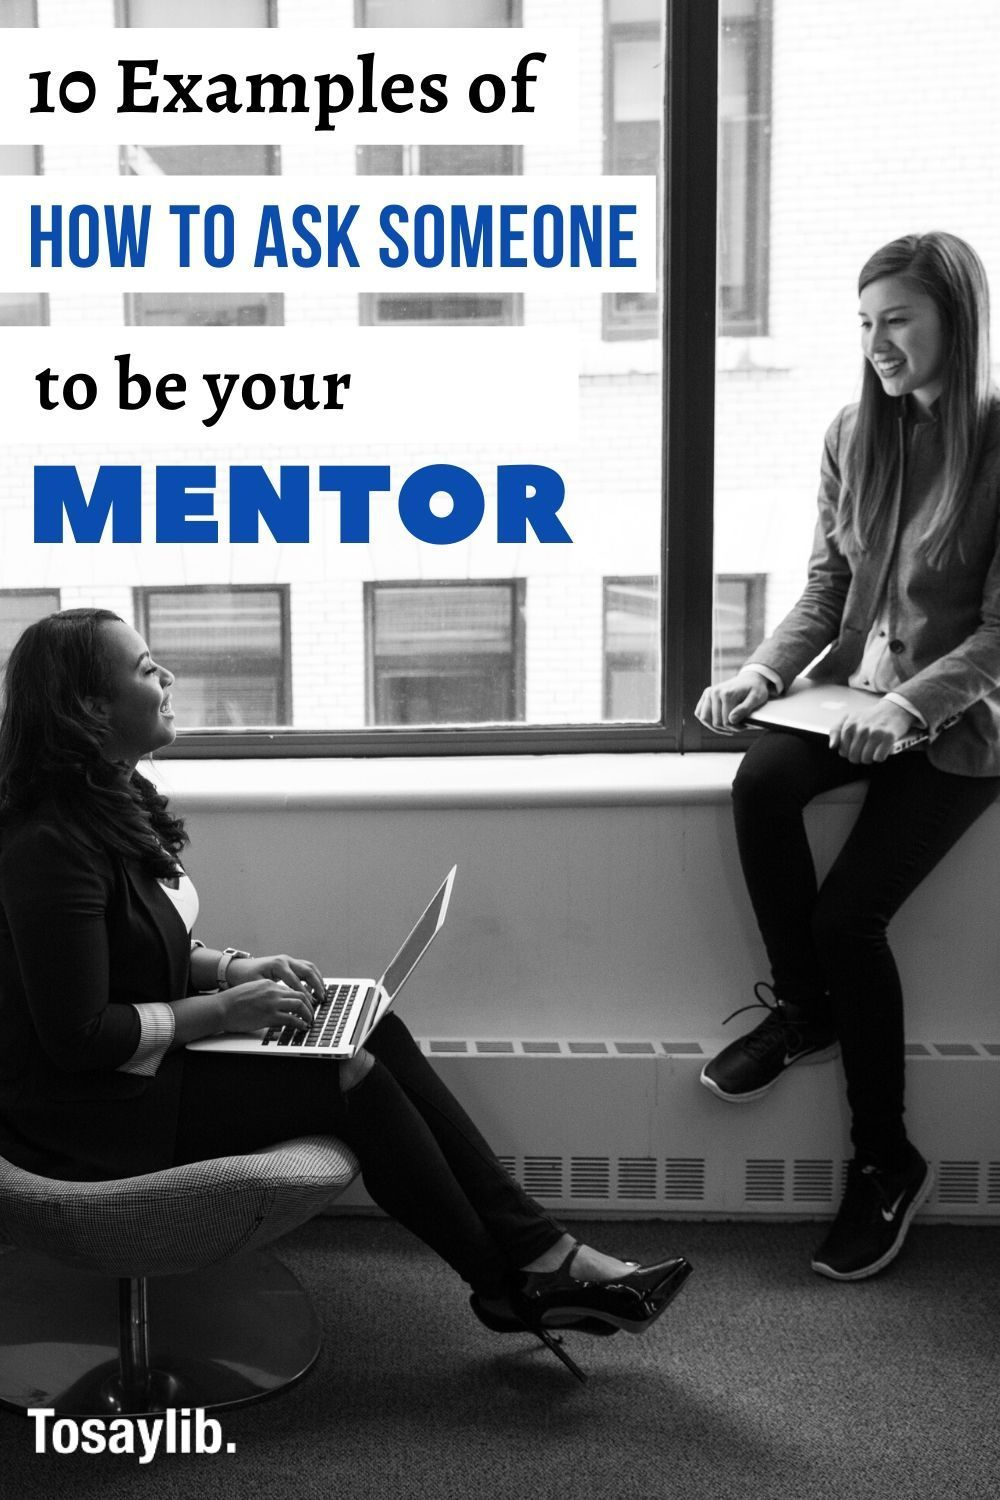 10 examples of how to ask someone to be your mentor in